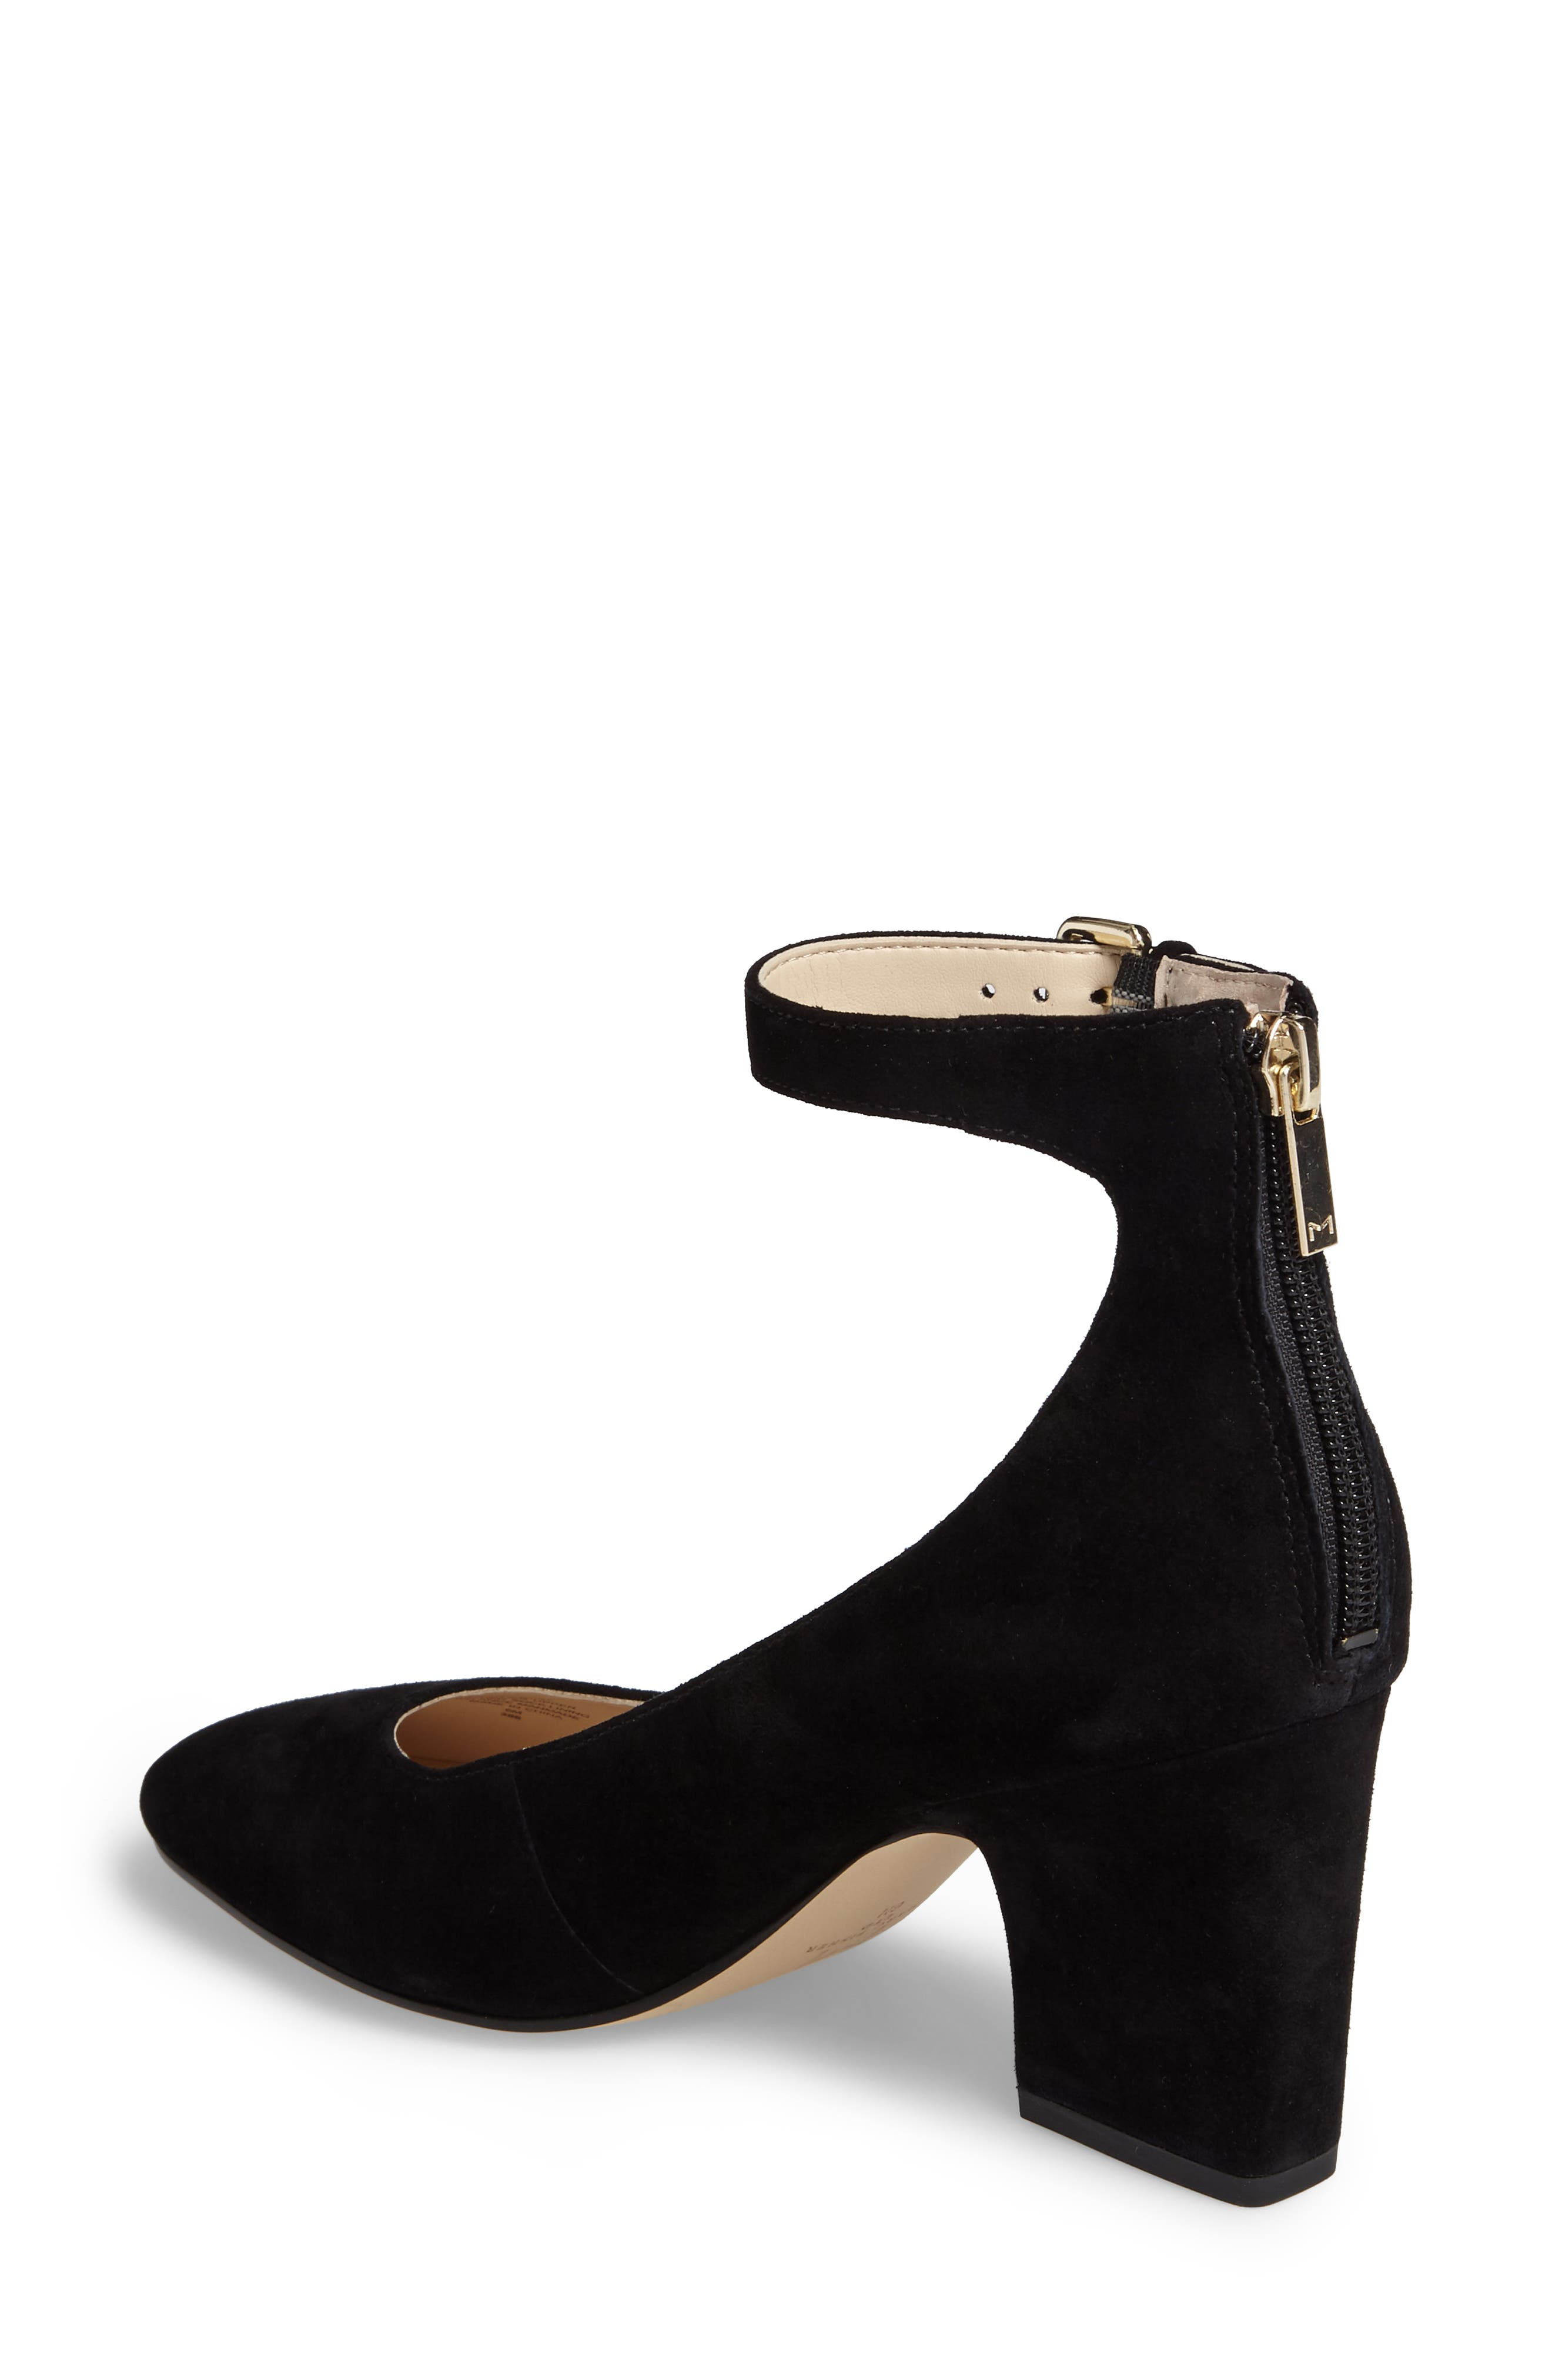 Anisy Ankle Strap Pump,                             Alternate thumbnail 6, color,